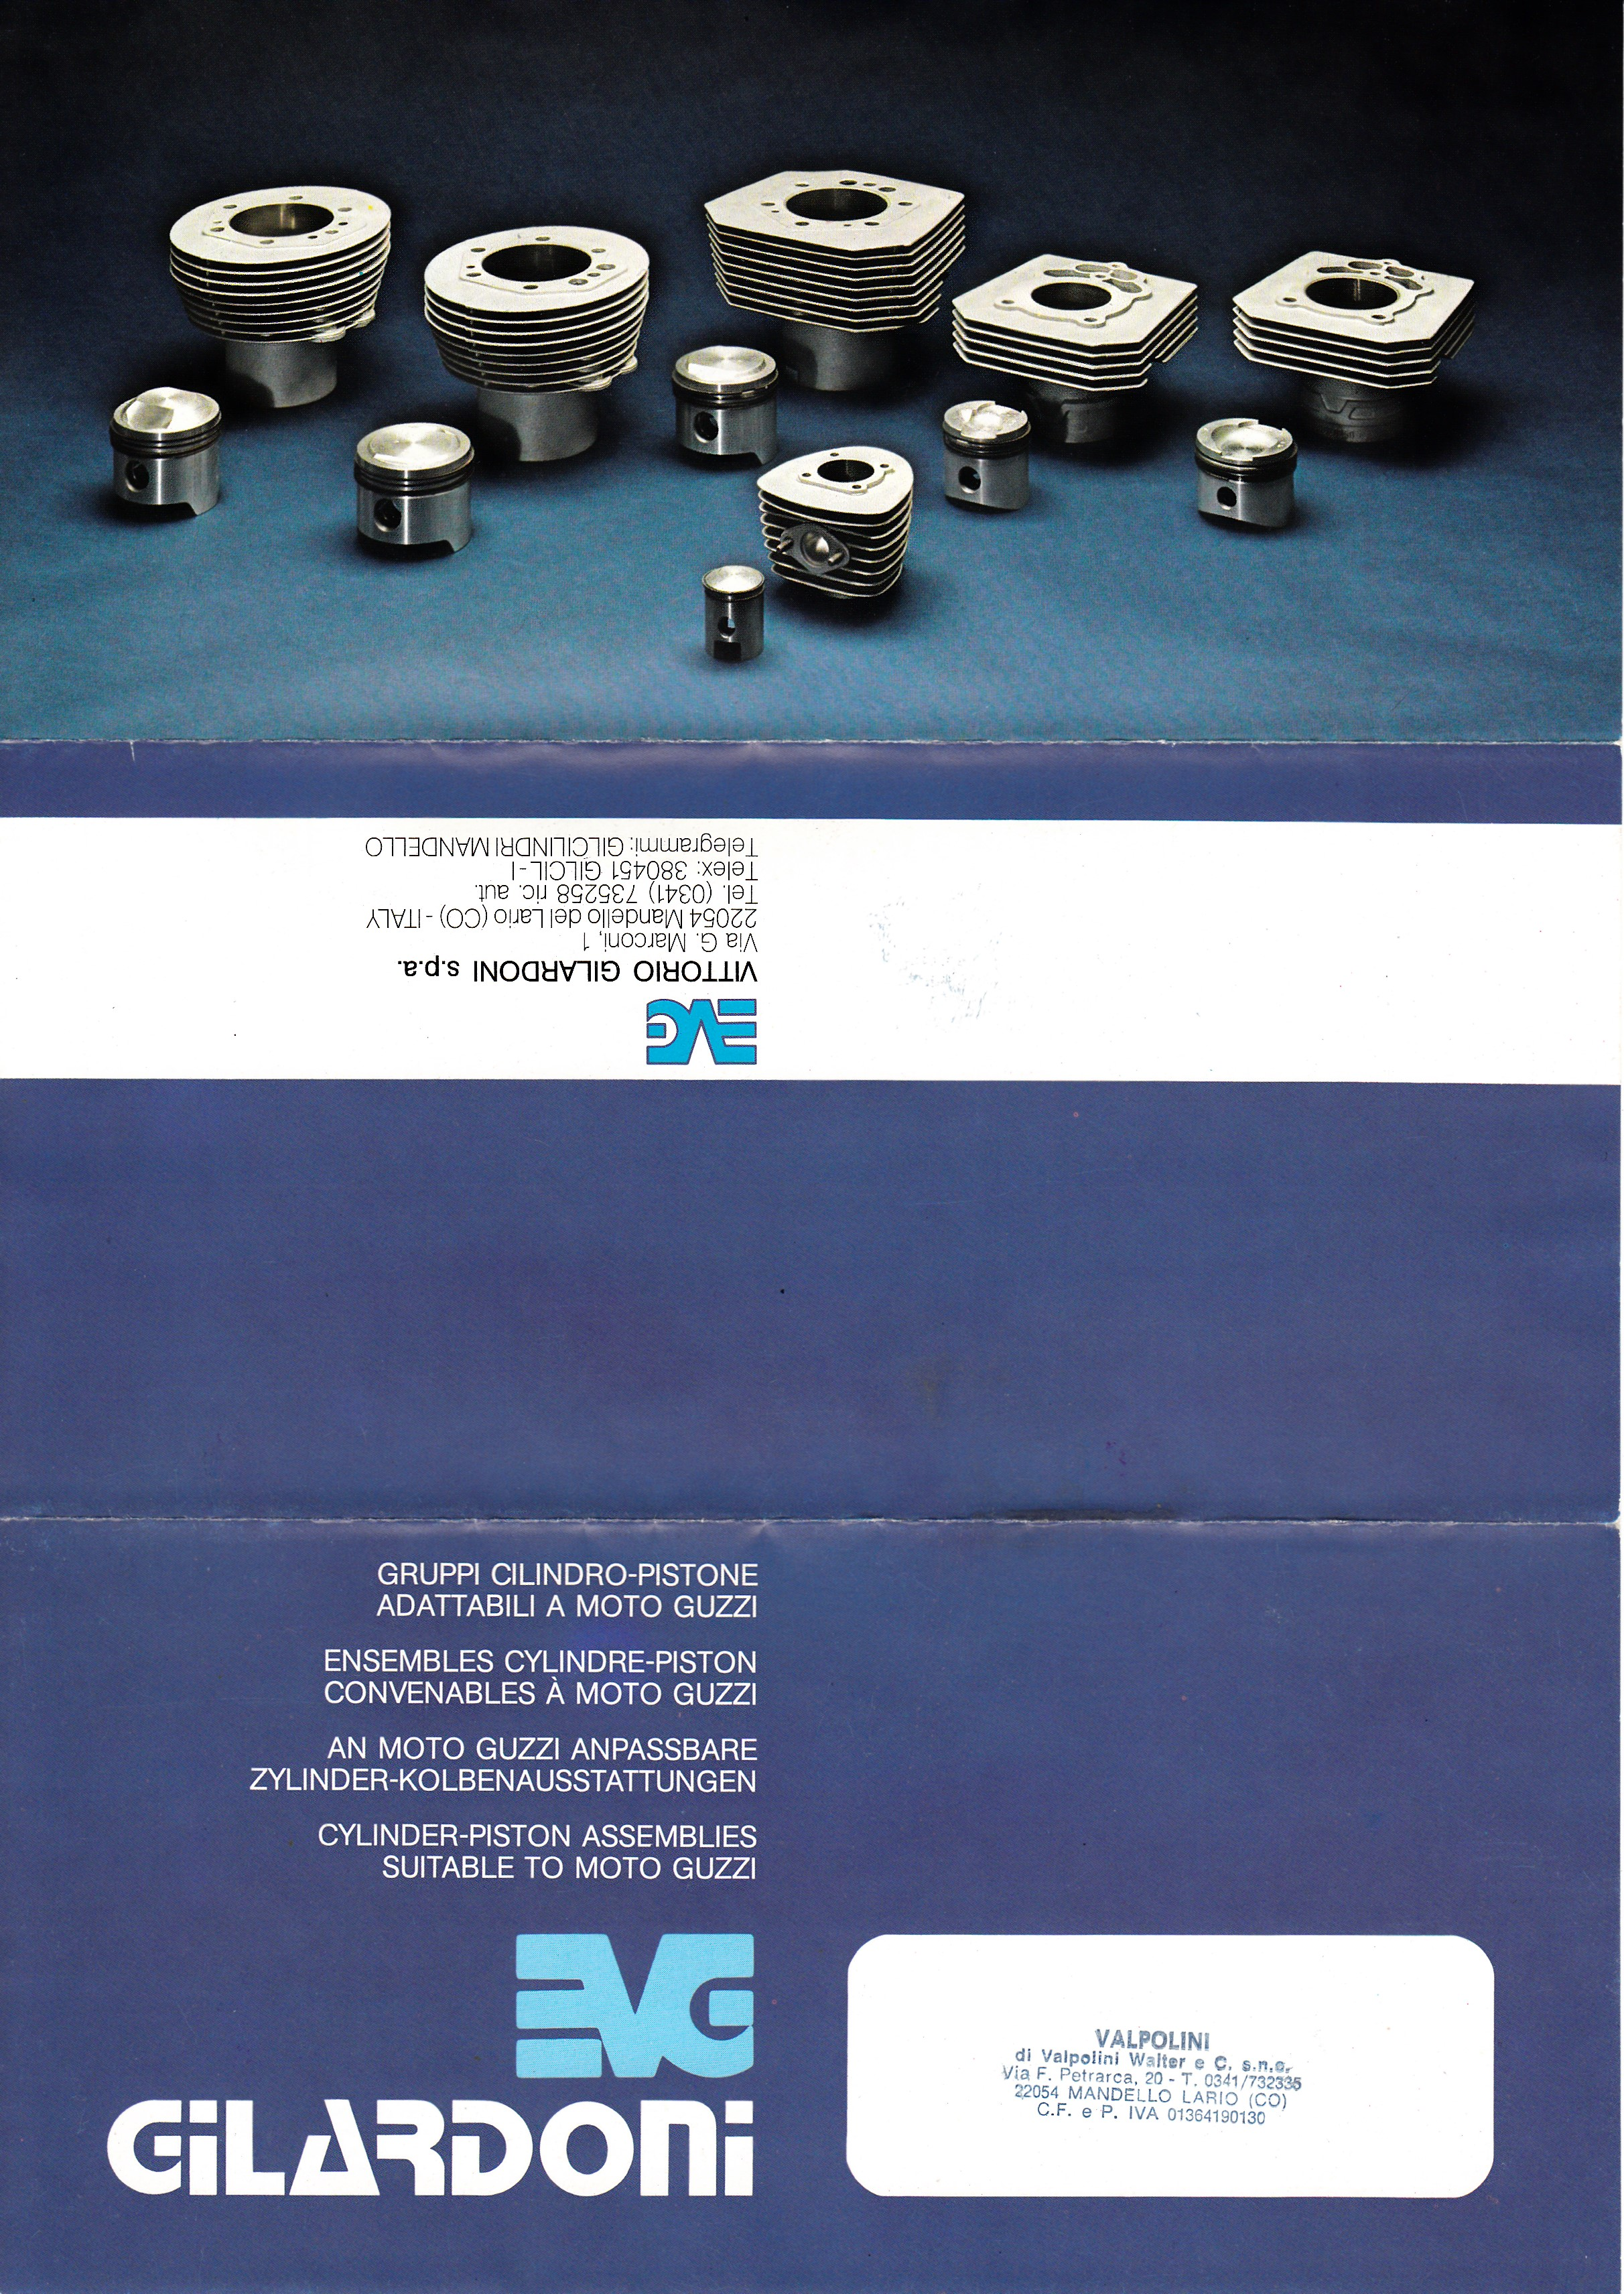 Brochure - Vittorio Gilardoni: Cylinder-piston assemblies suitable to Moto Guzzi